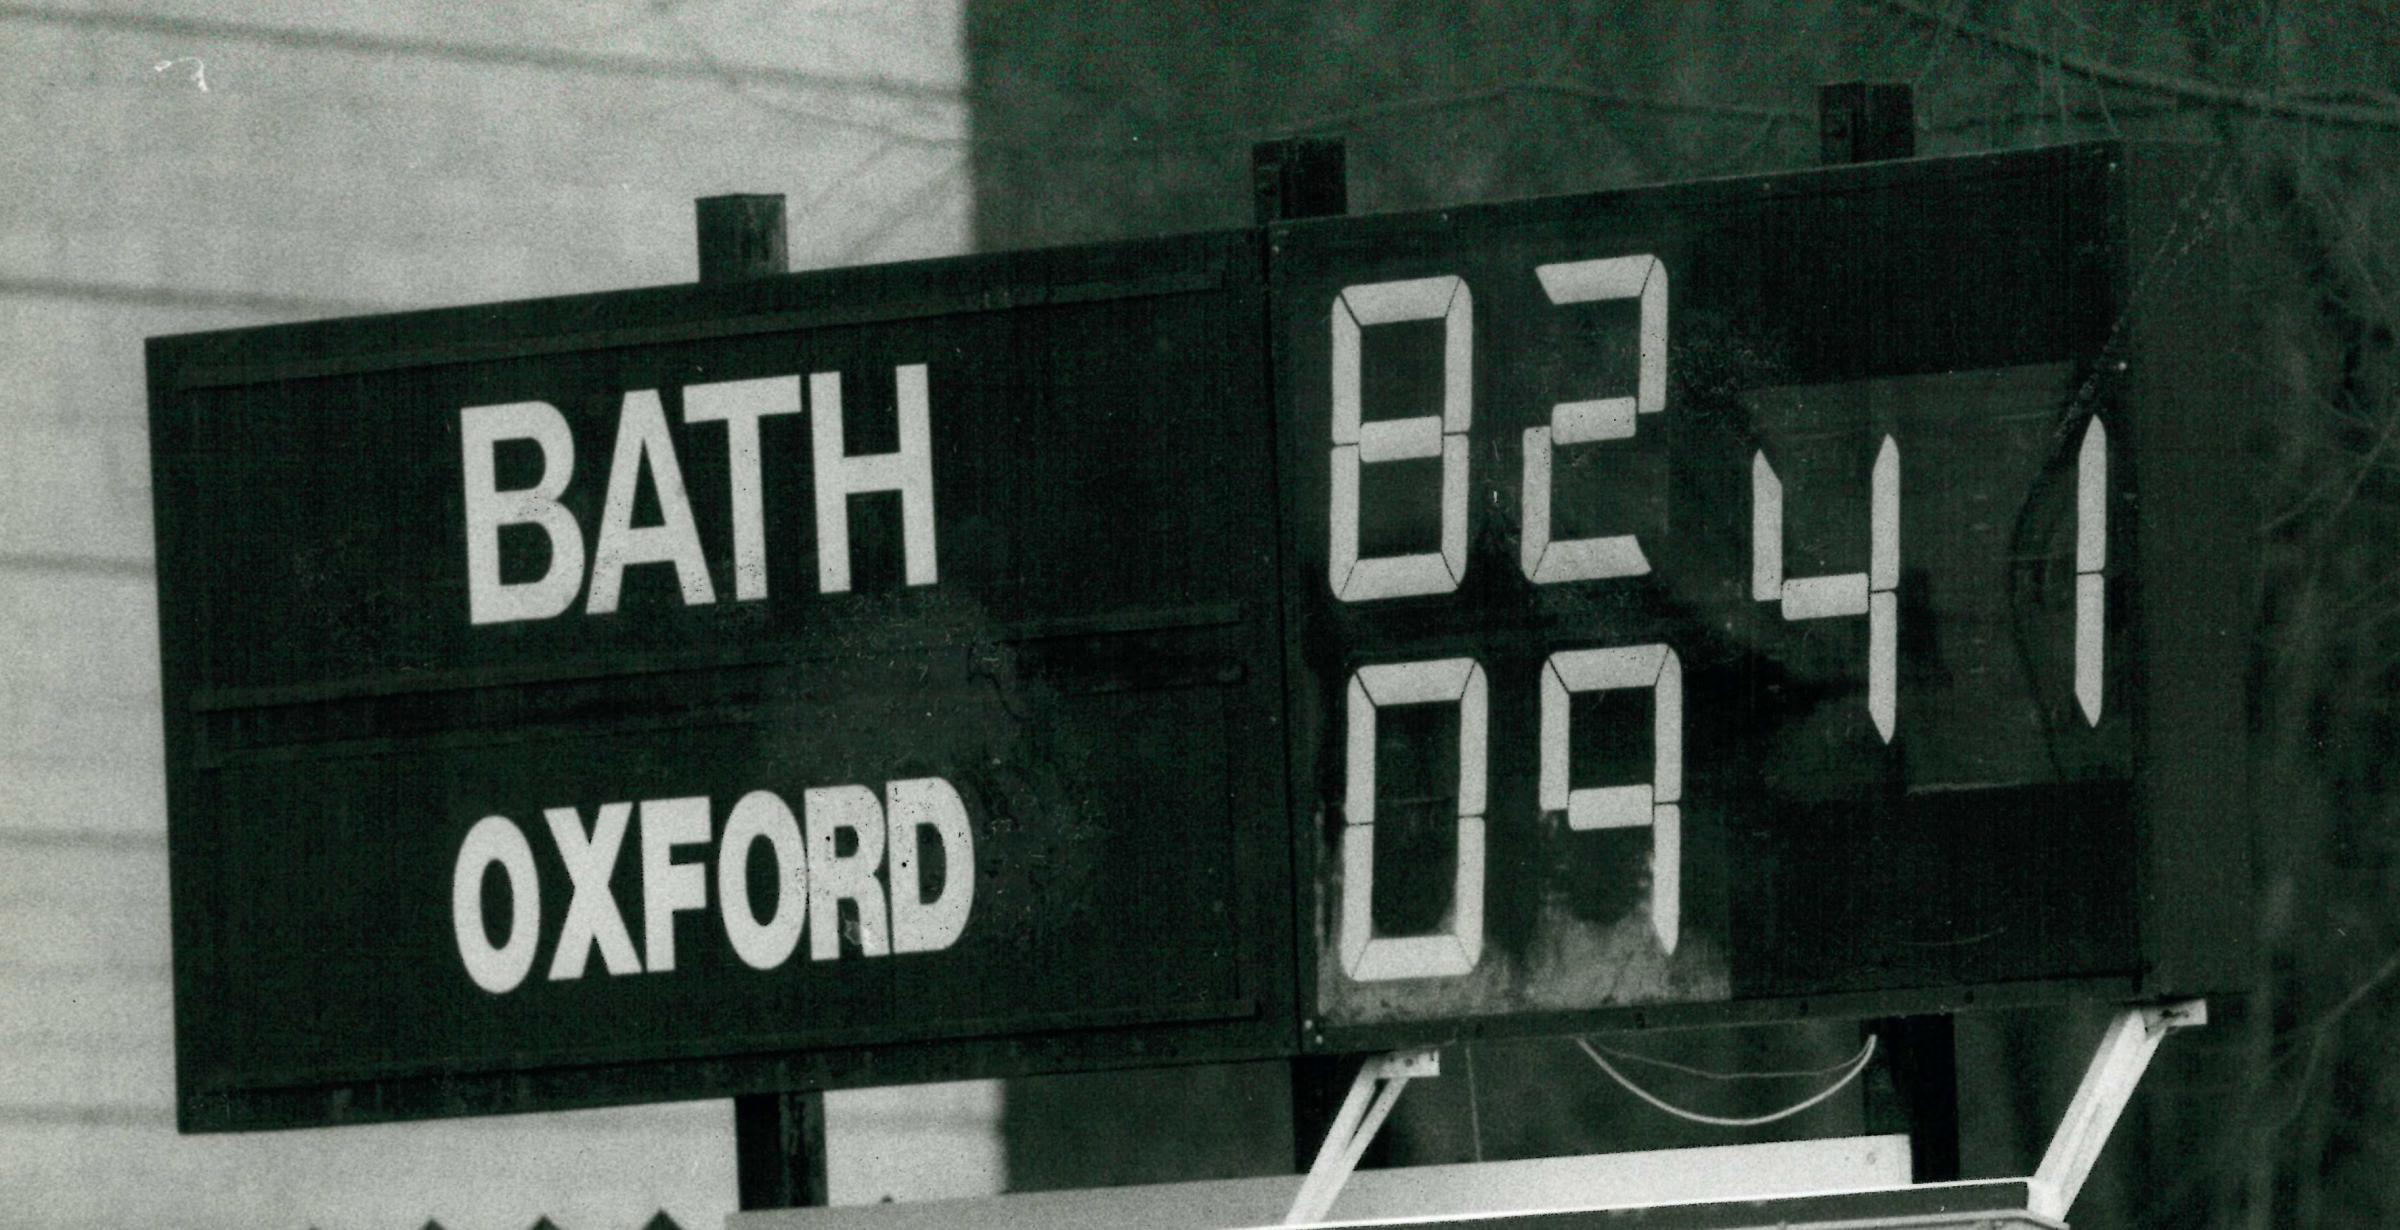 The scoreboard at The Rec in 1989